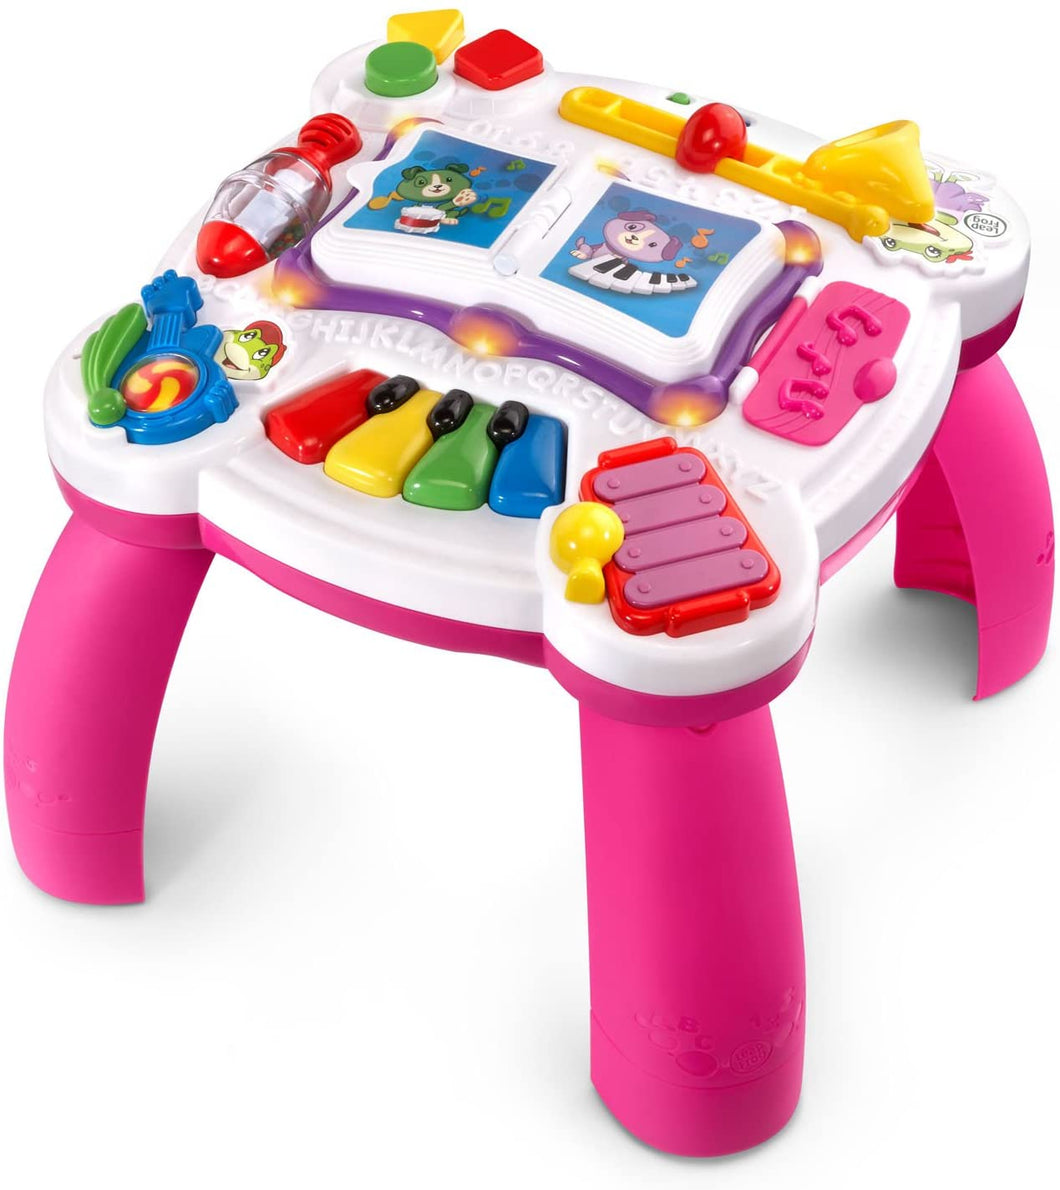 LeapFrog Music Table - Pink